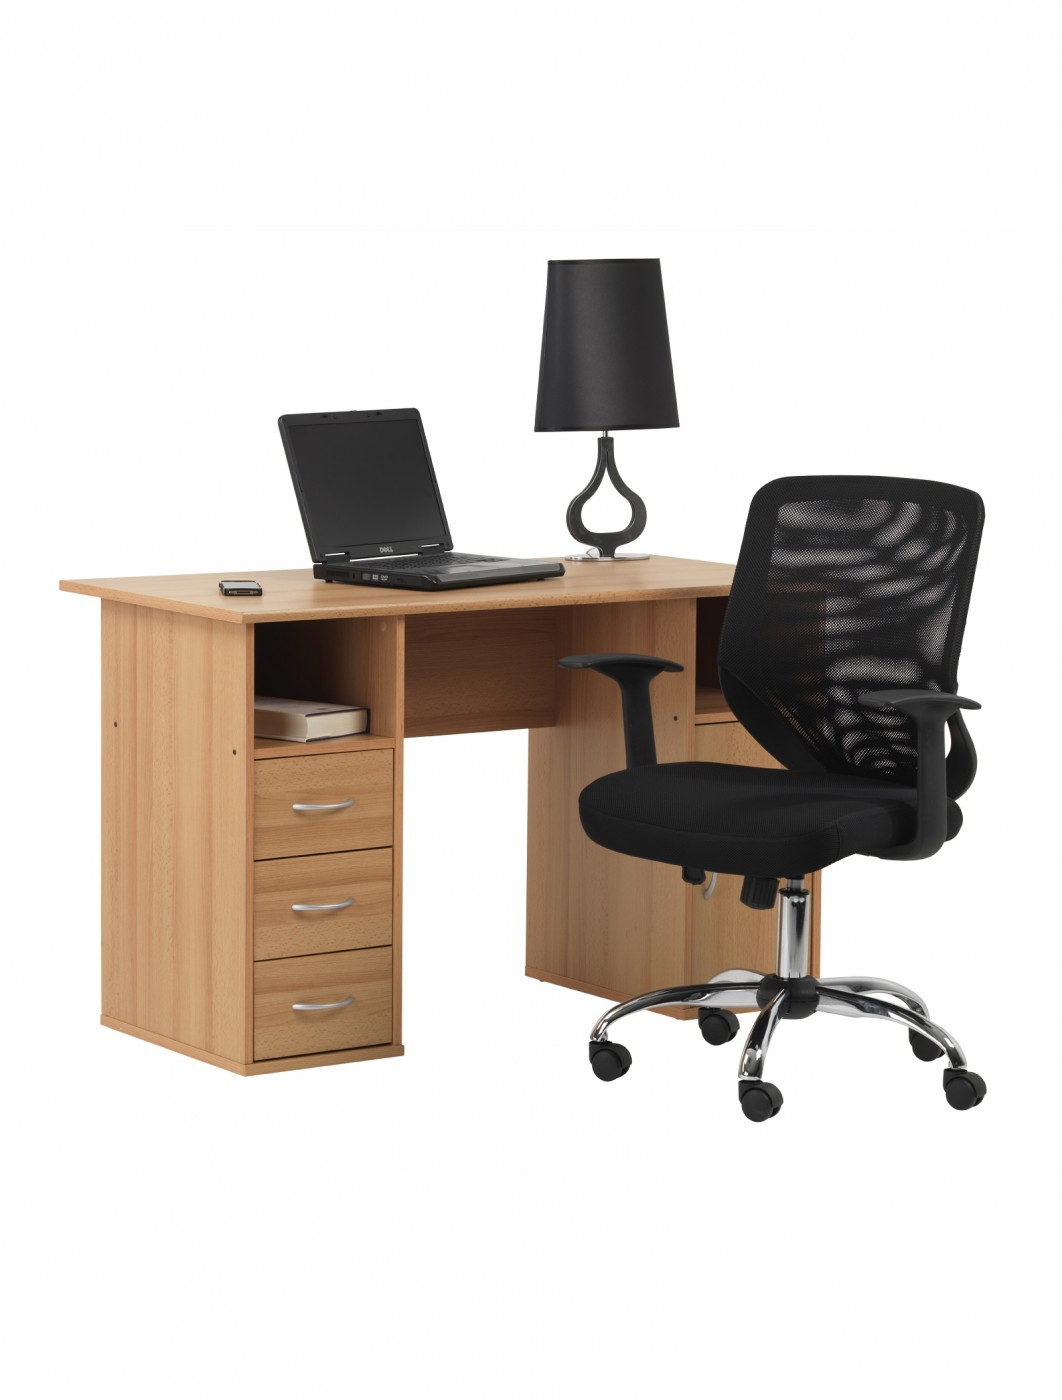 Marvelous photograph of Maryland Computer Workstation AW12010 121 Office Furniture with #8F643C color and 1062x1400 pixels